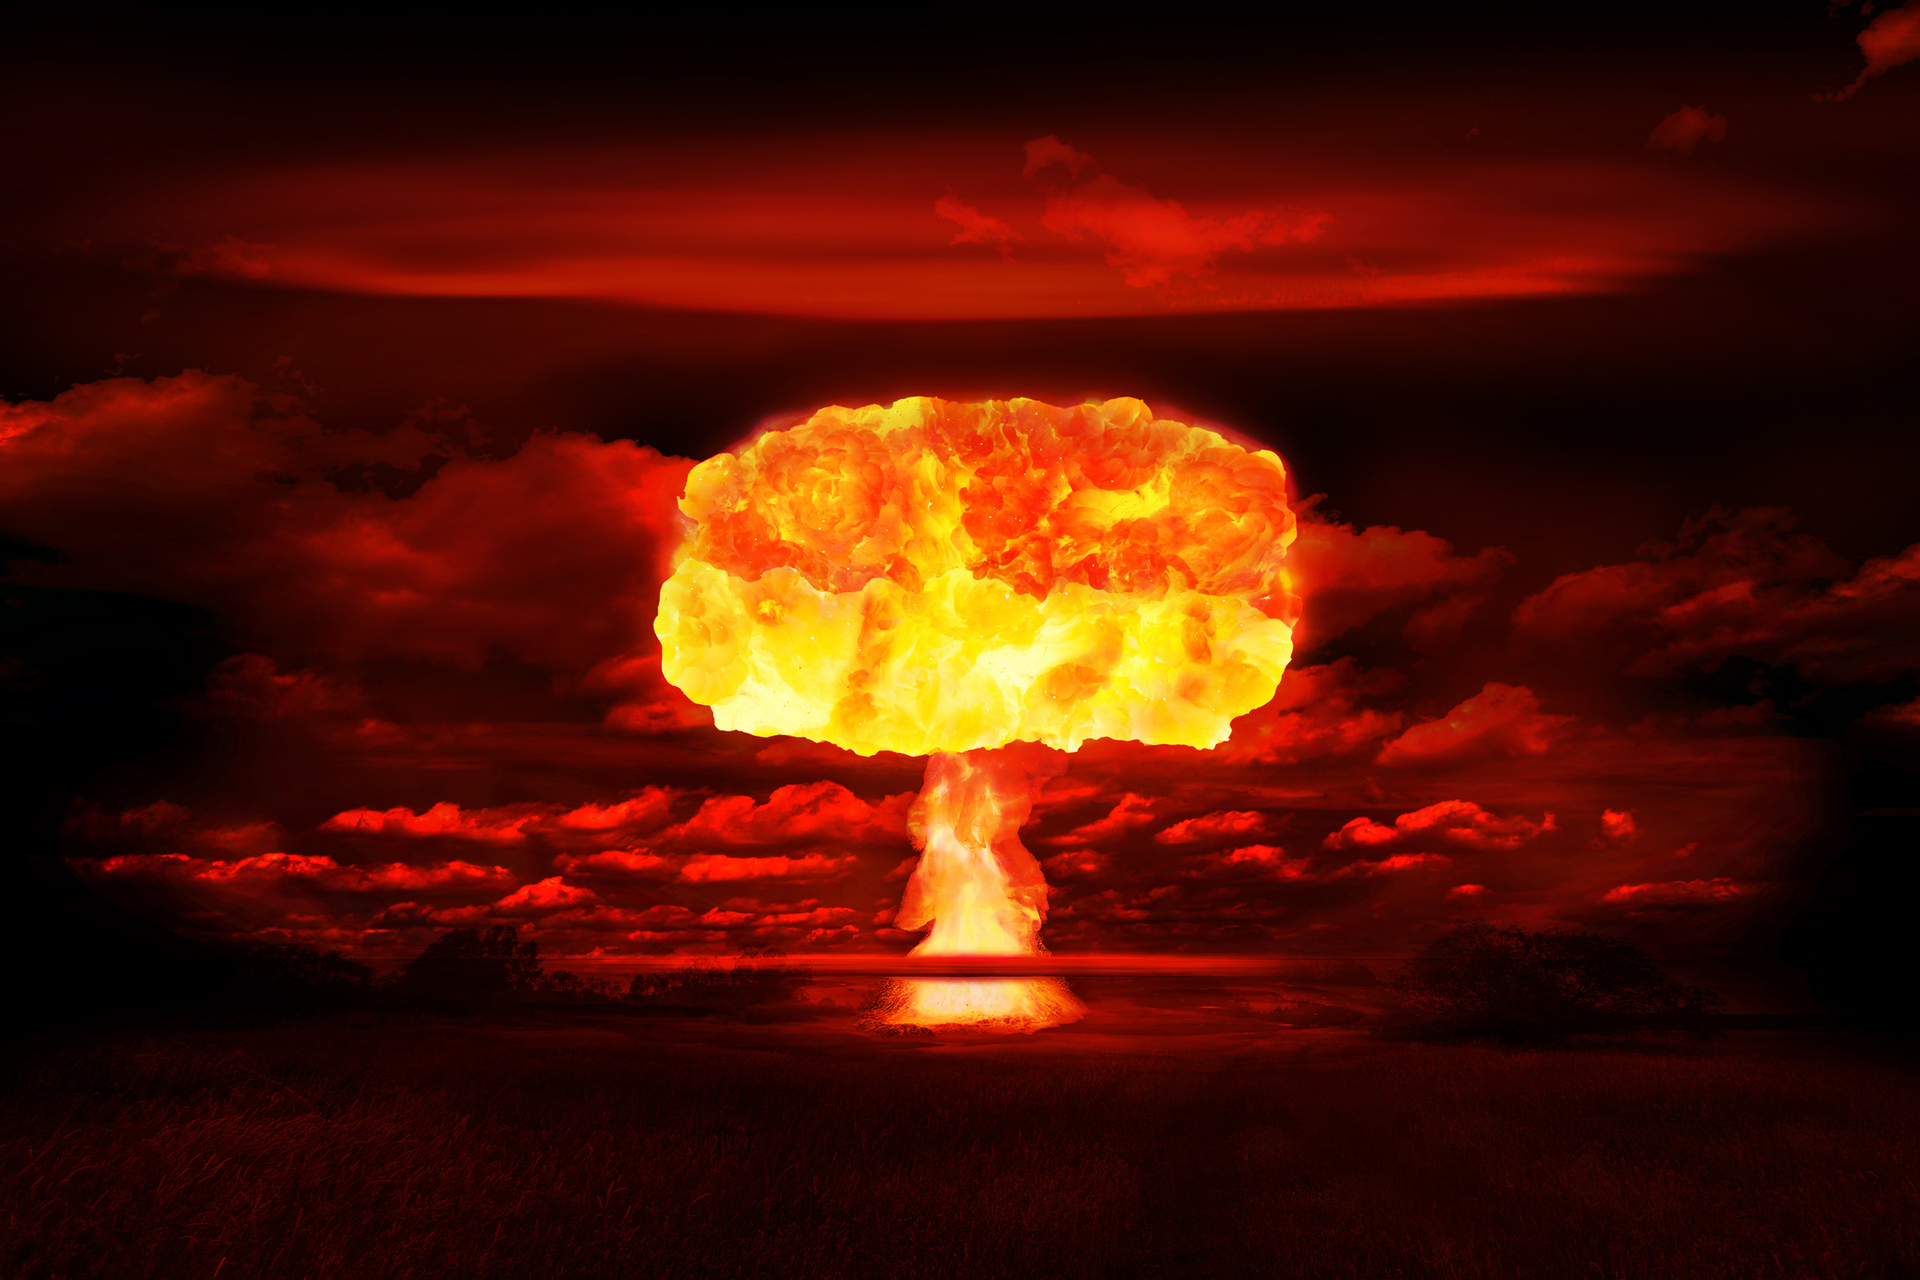 UN disarmament chief says the world faces the highest risk of nuclear war since World War II